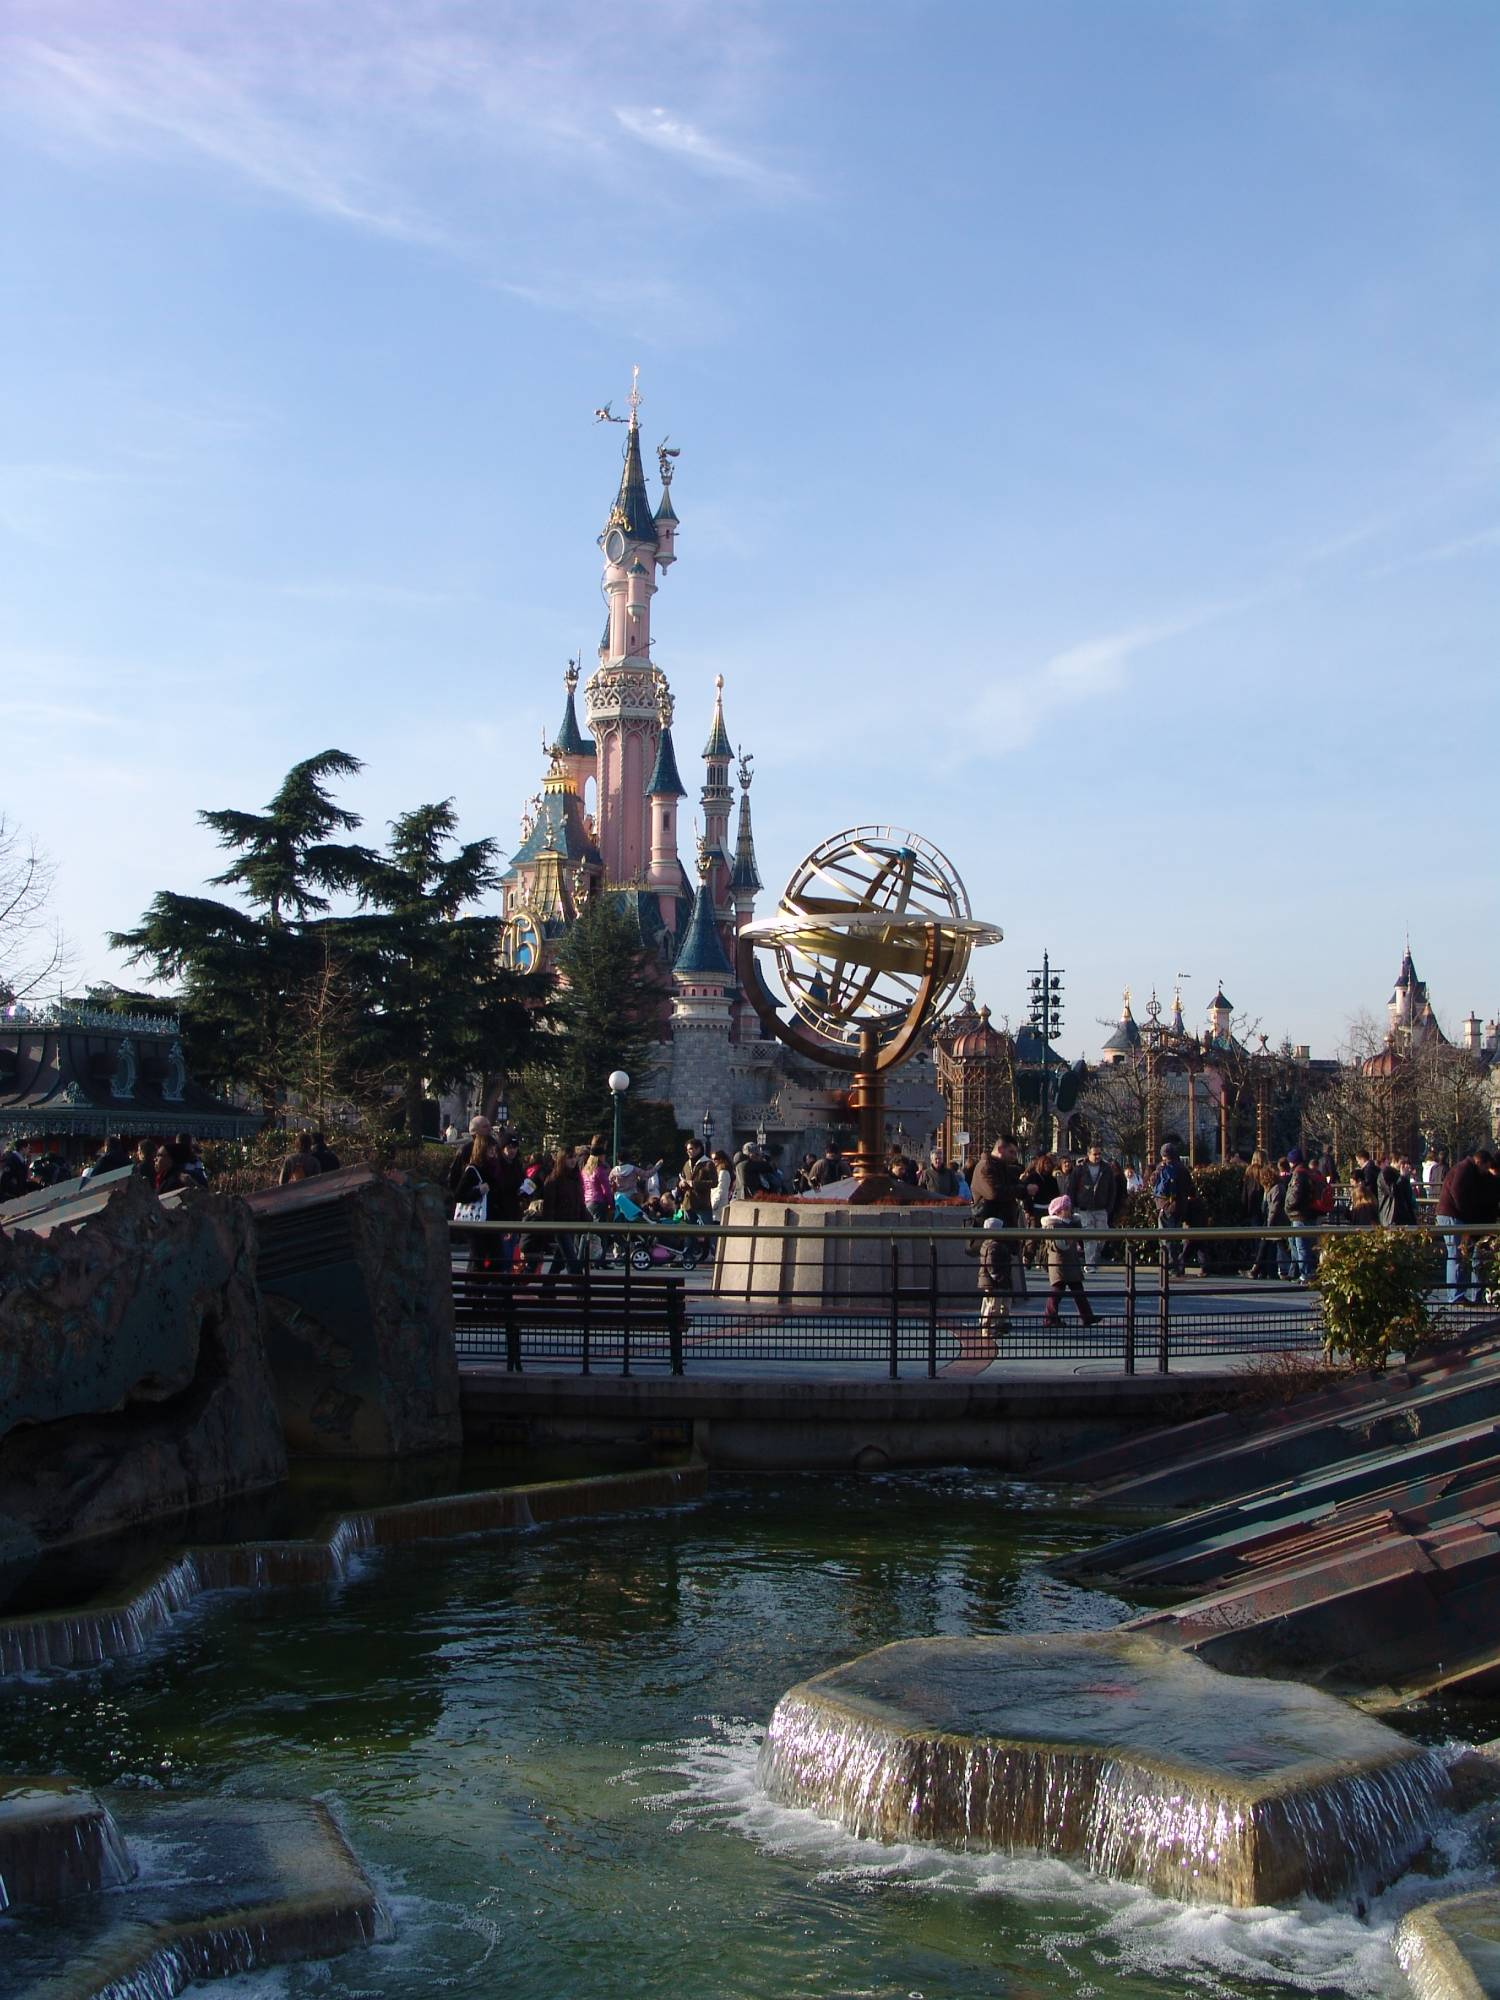 Disneyland Paris - Sleeping Beauty Castle